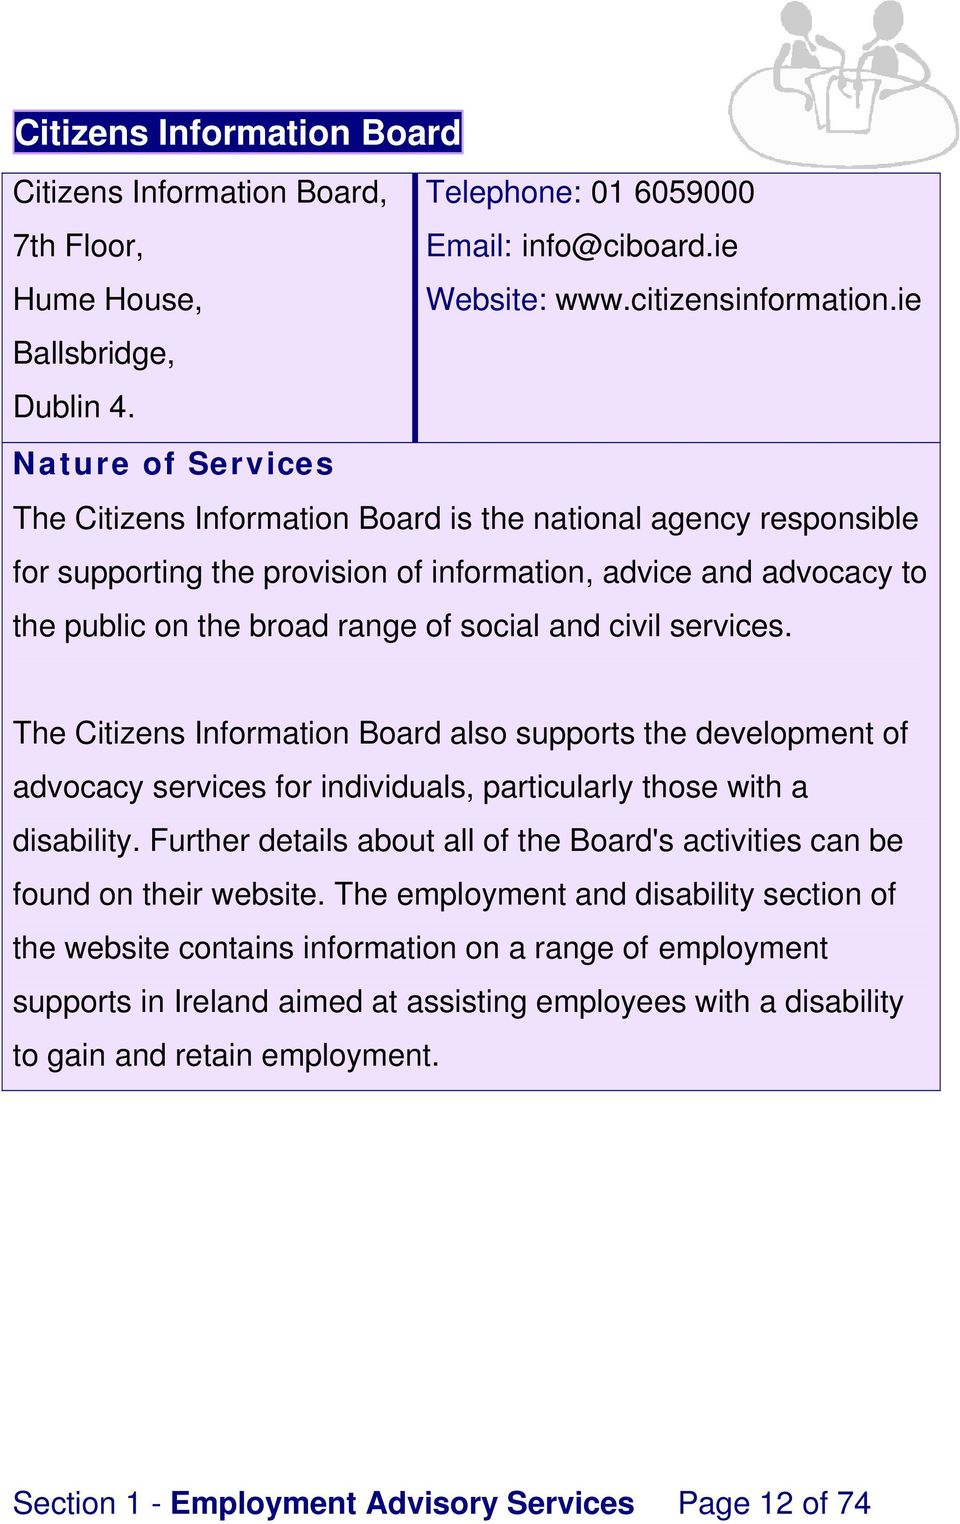 The Citizens Information Board also supports the development of advocacy services for individuals, particularly those with a disability.